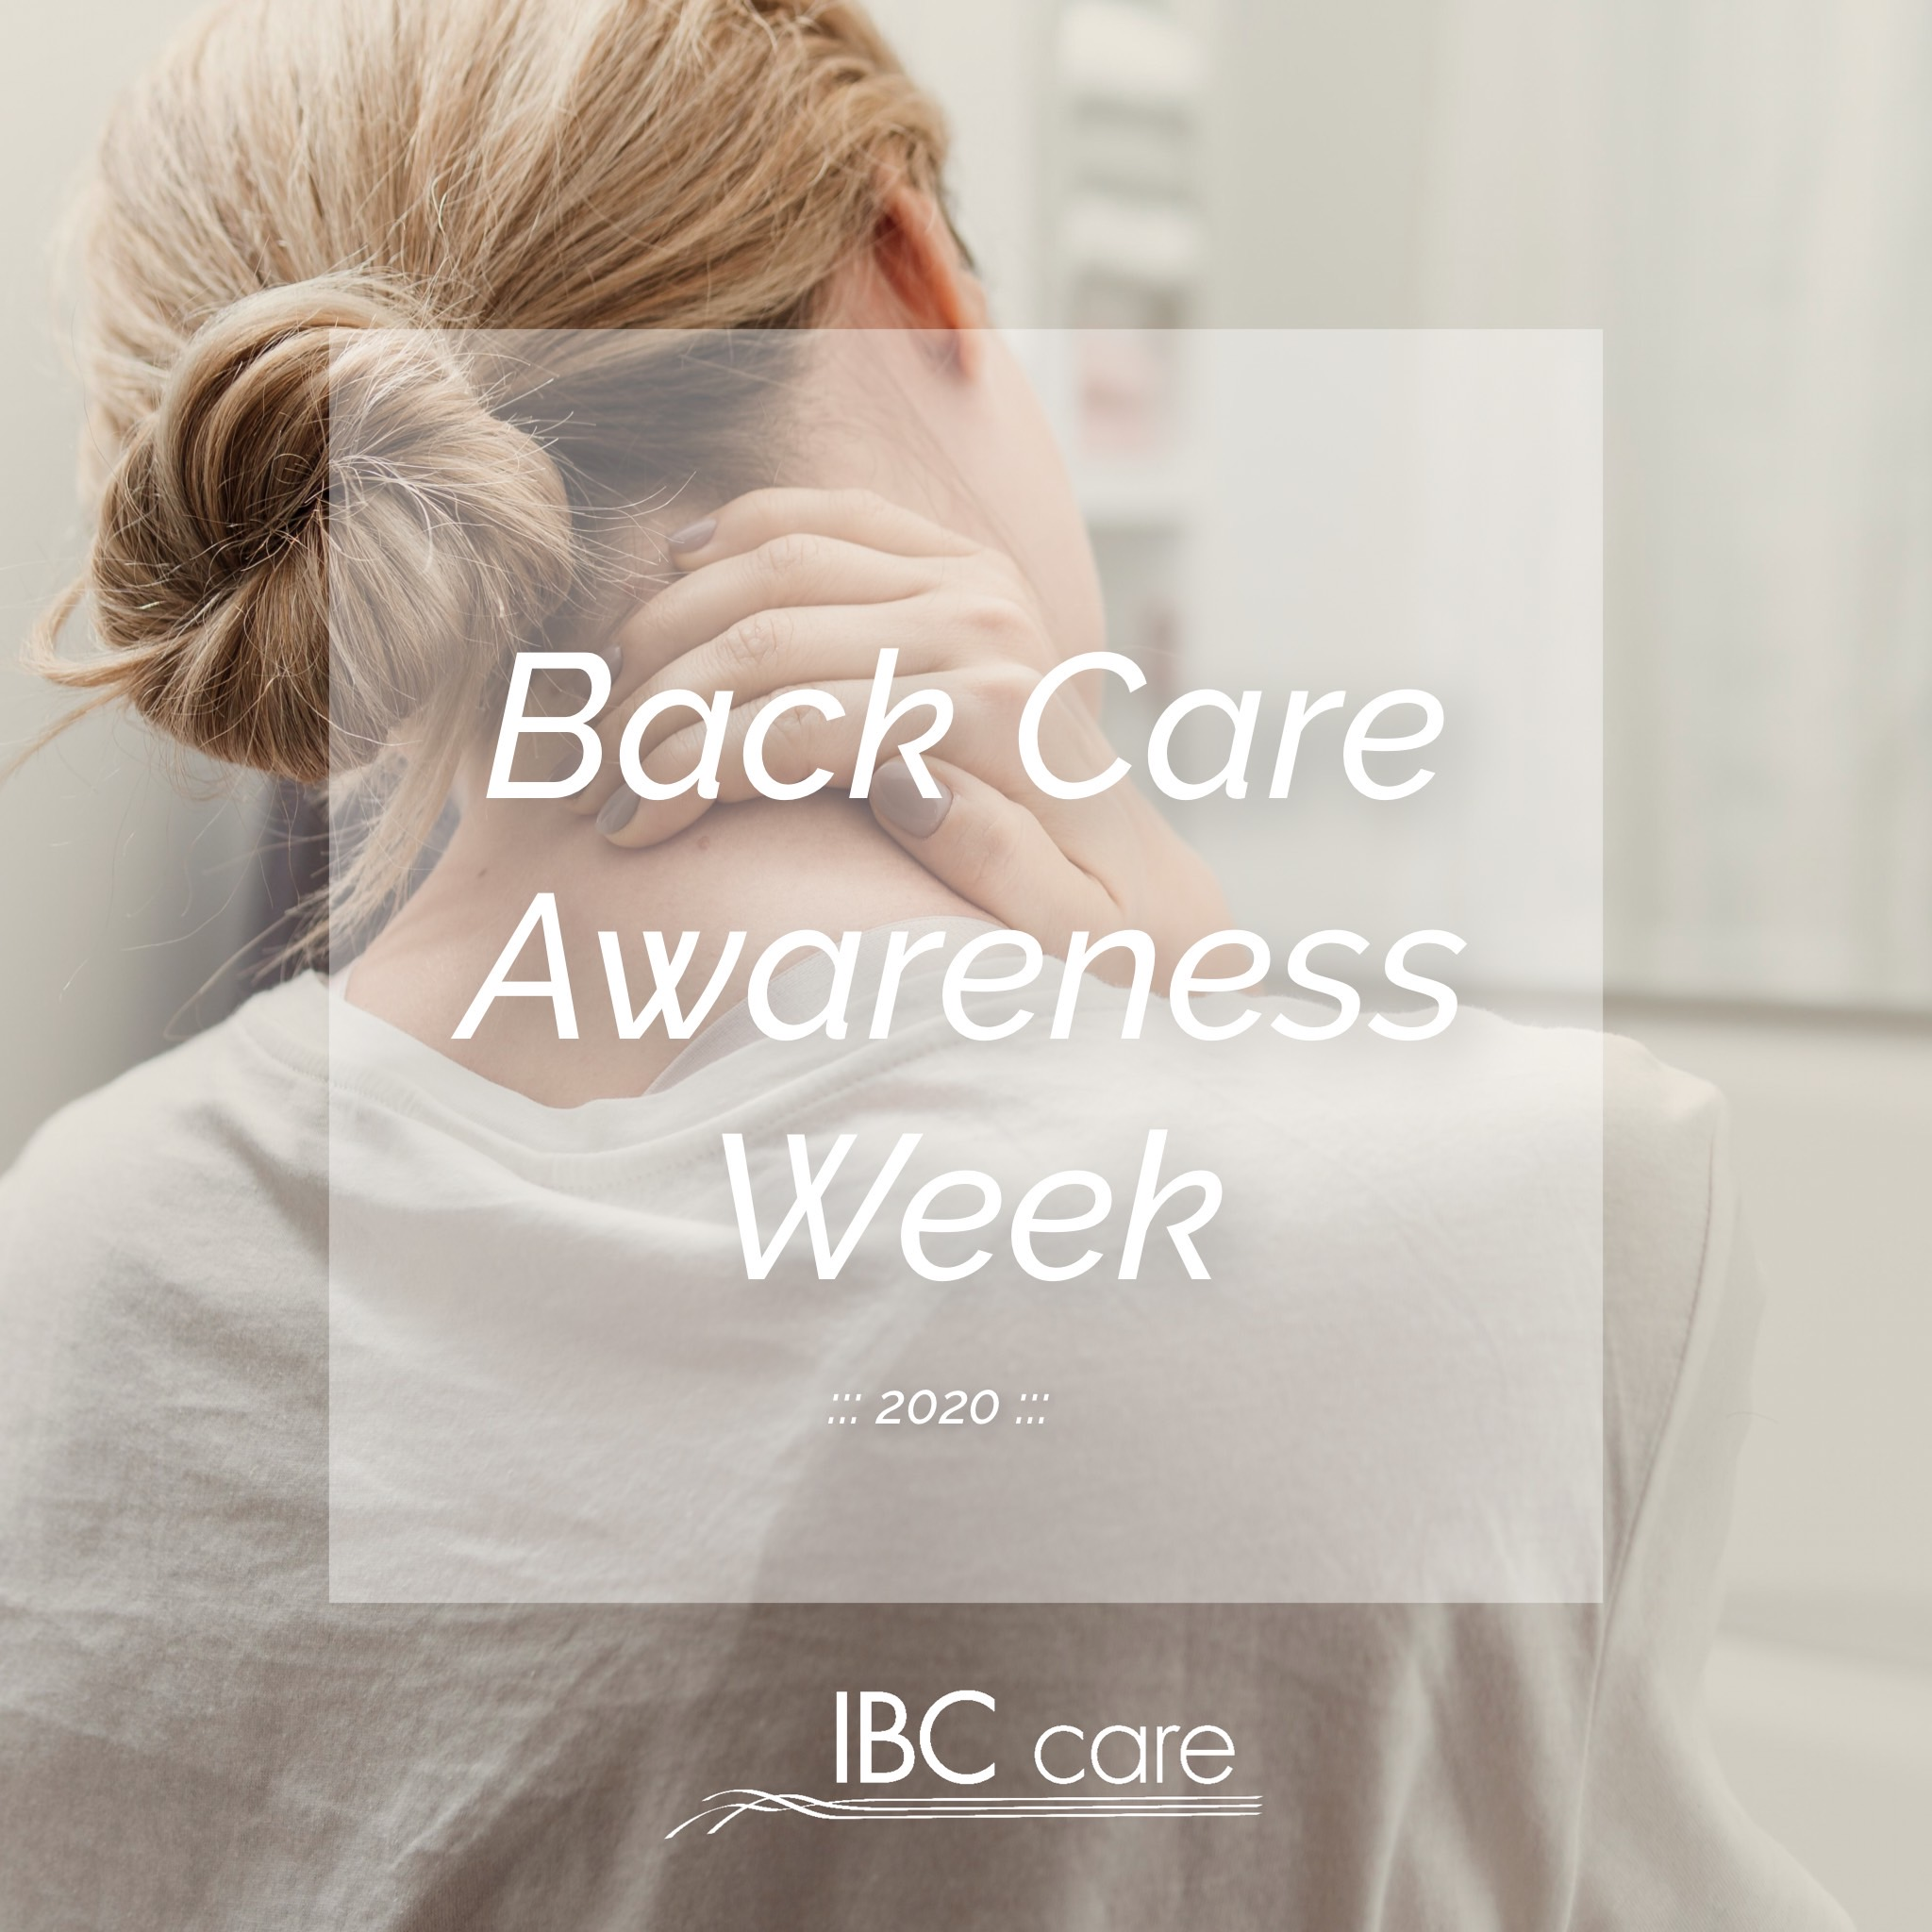 Back Care Awareness Week 2020